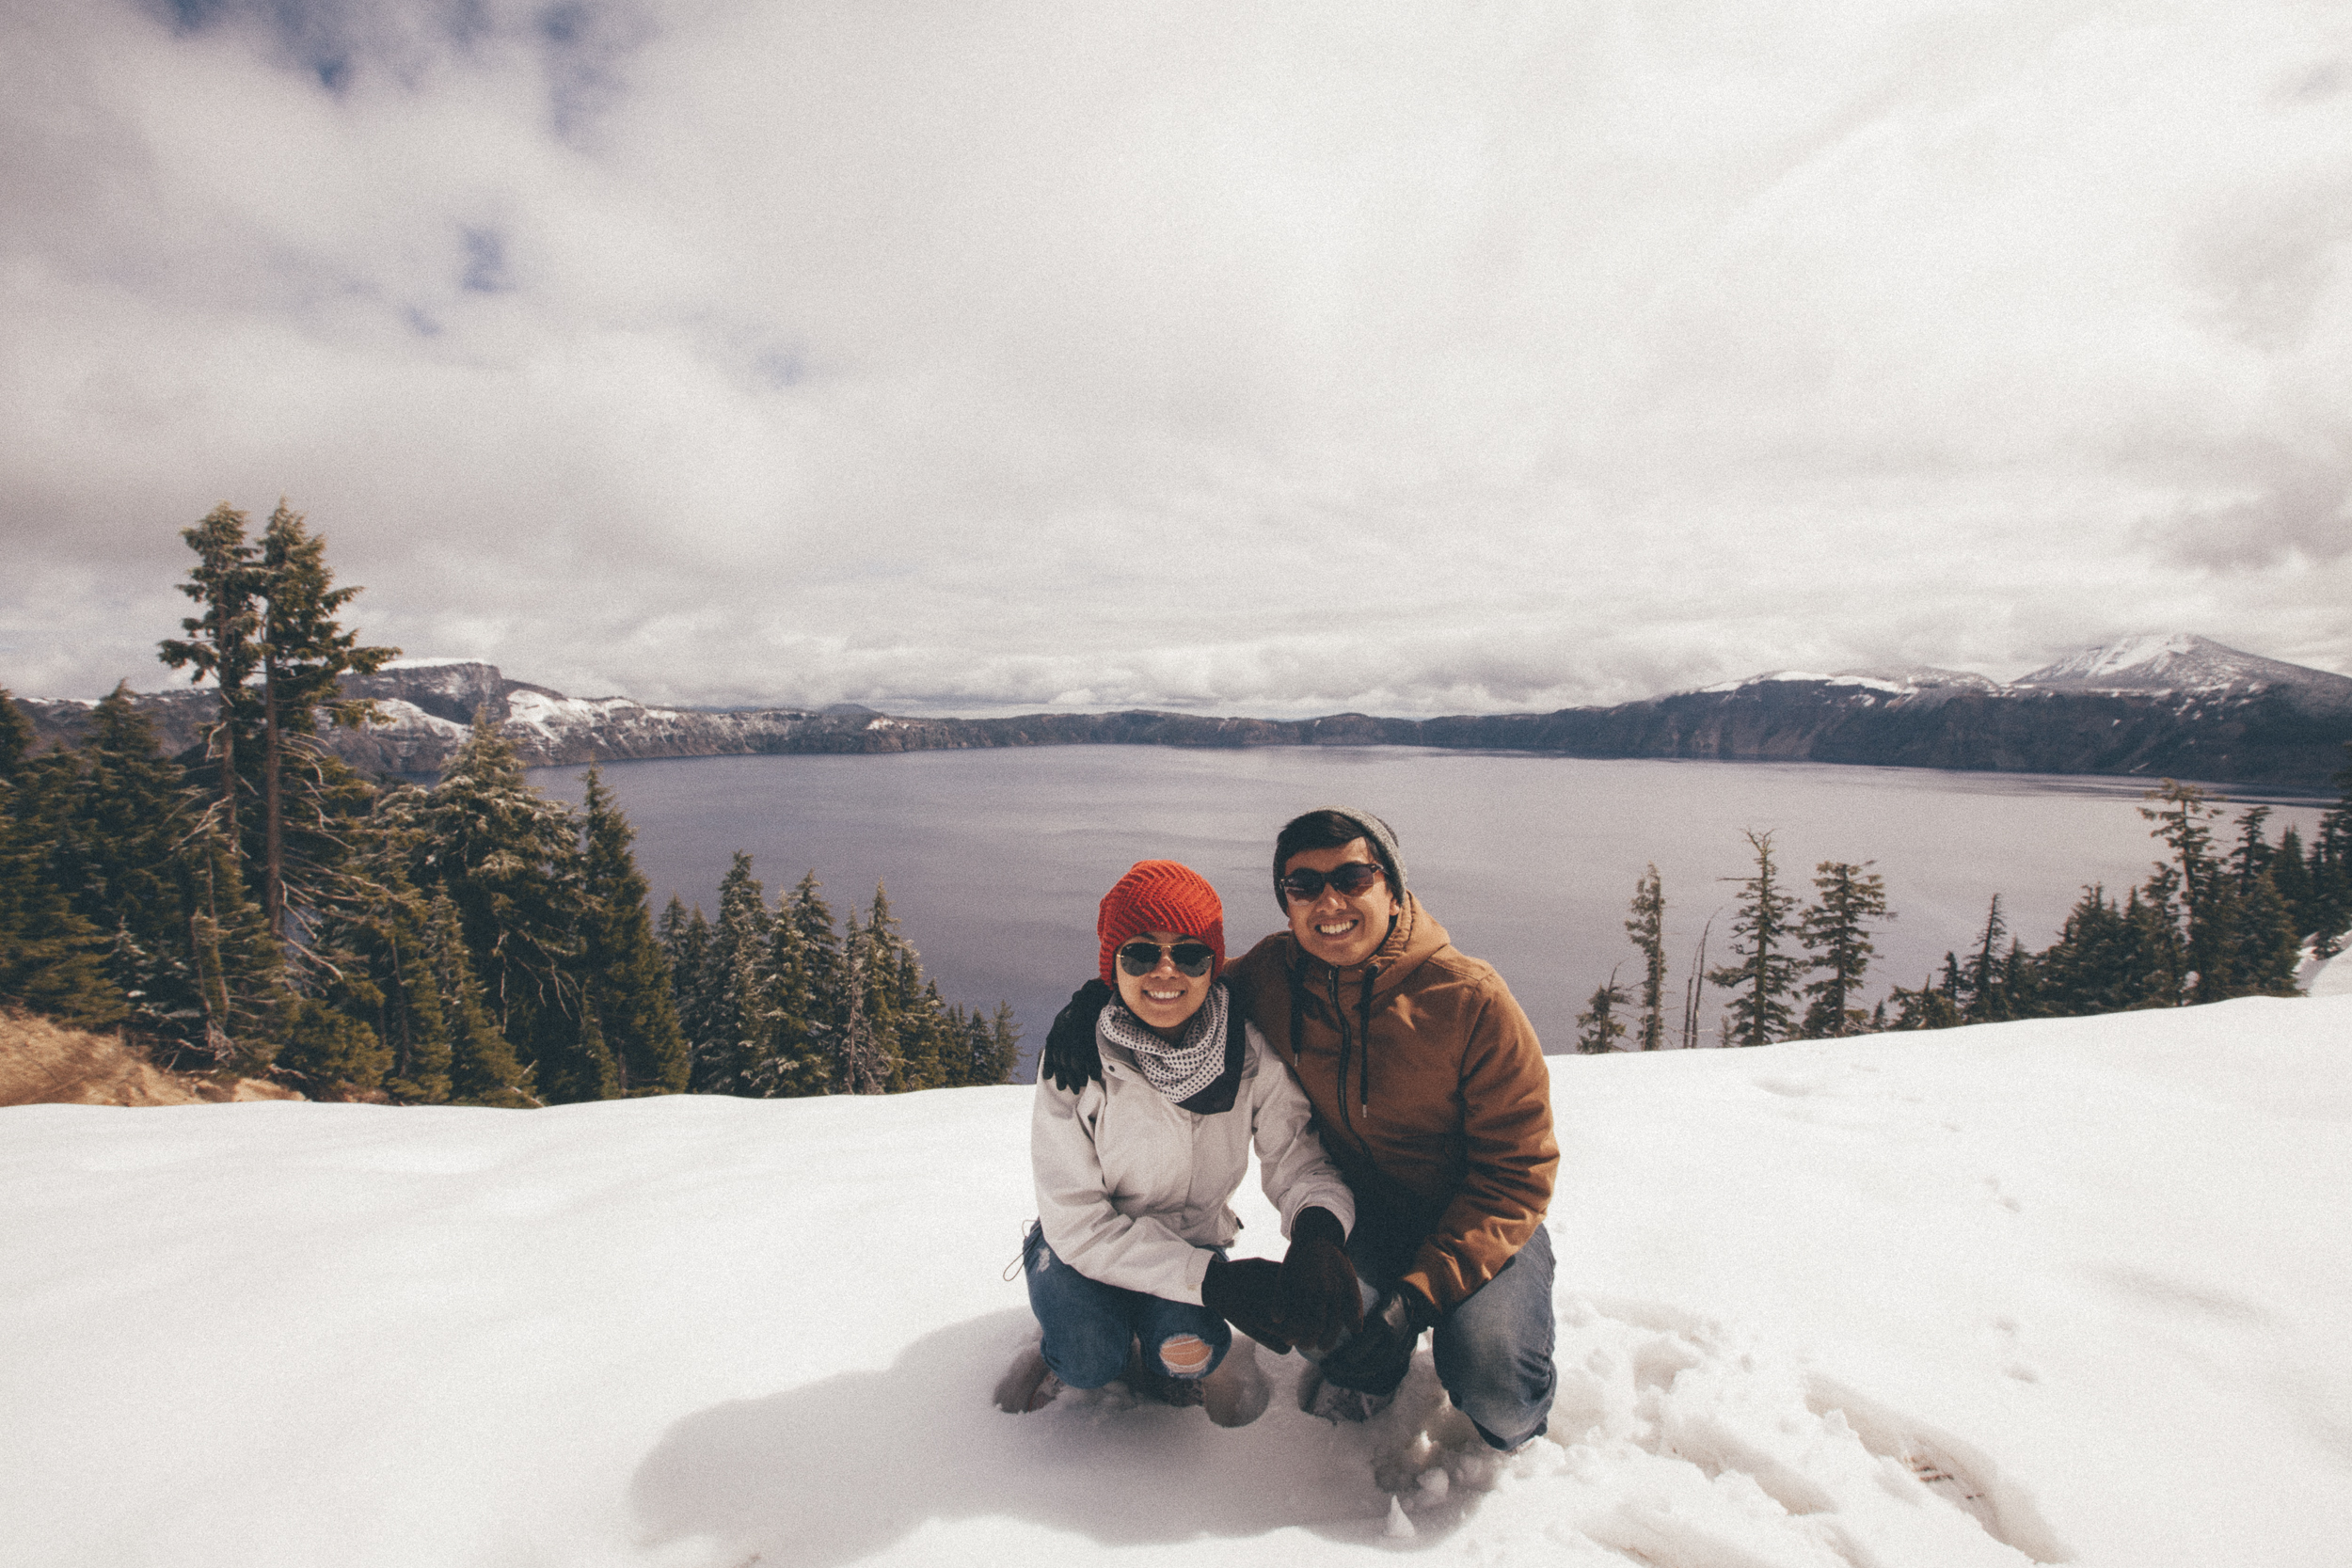 Photographing the Discovery Point Trail at Crater Lake National Park, Oregon